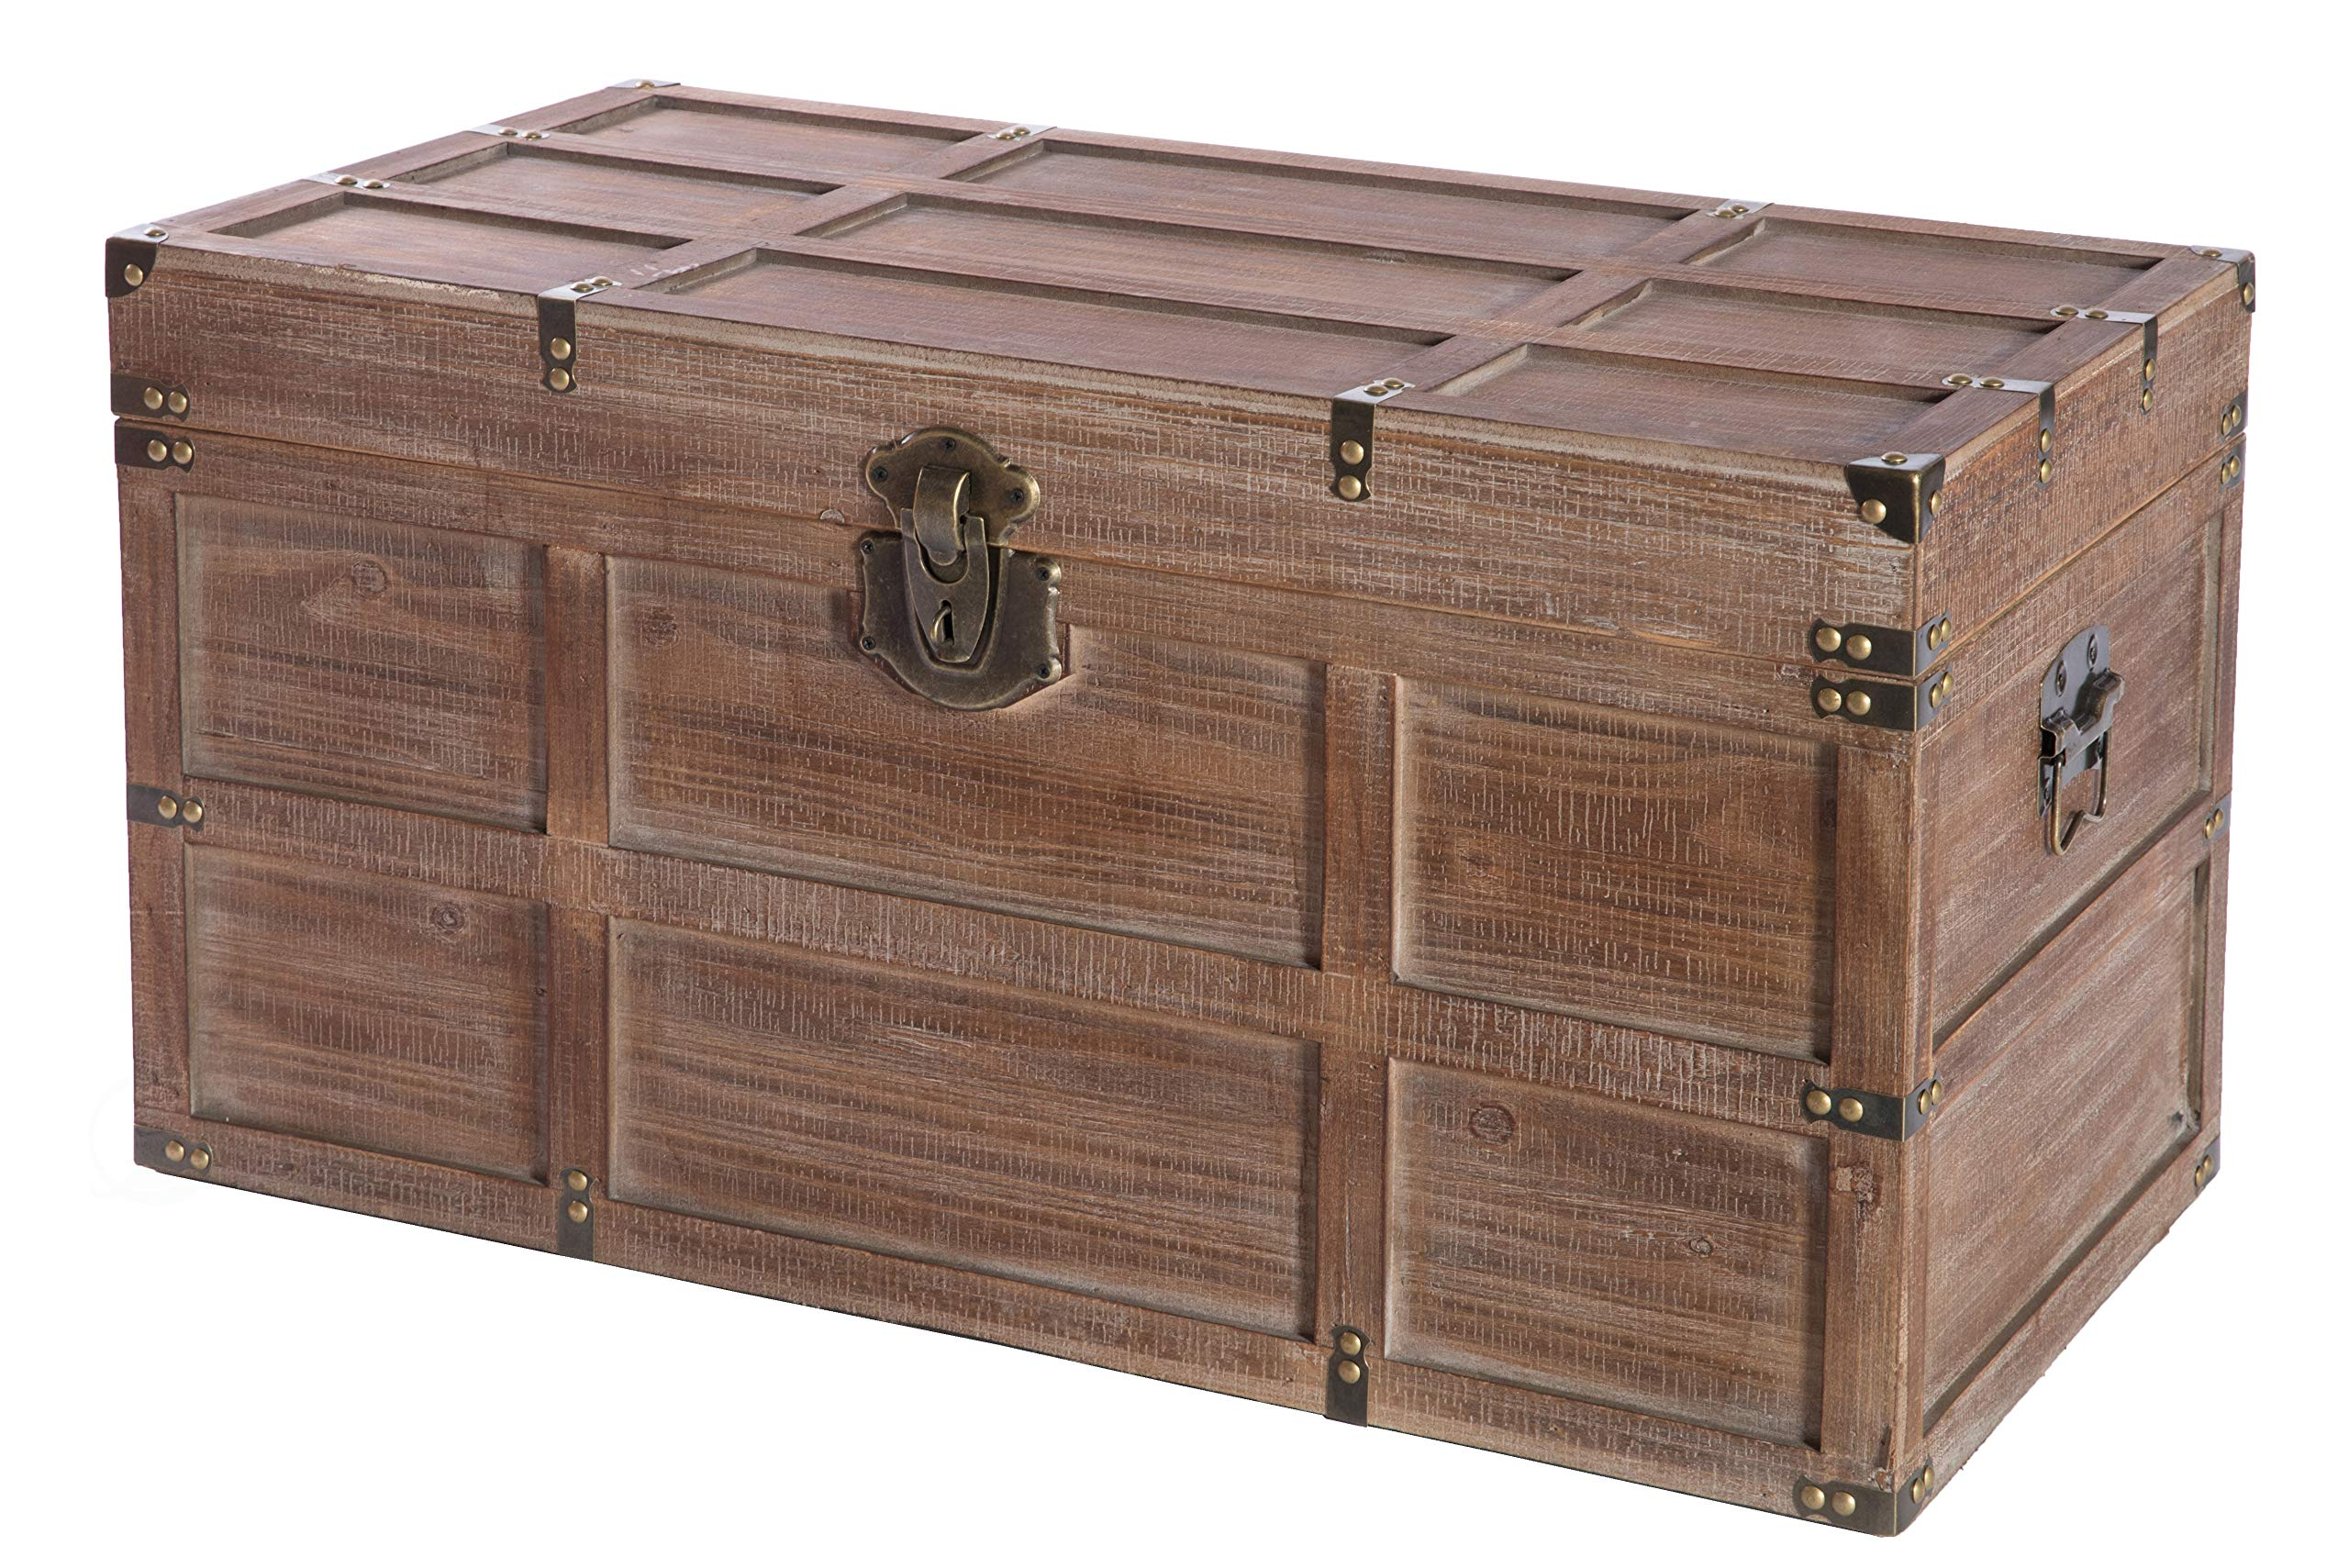 Vintiquewise Wooden Rectangular Lined Rustic Storage Trunk with Latch, Large, Brown by Vintiquewise